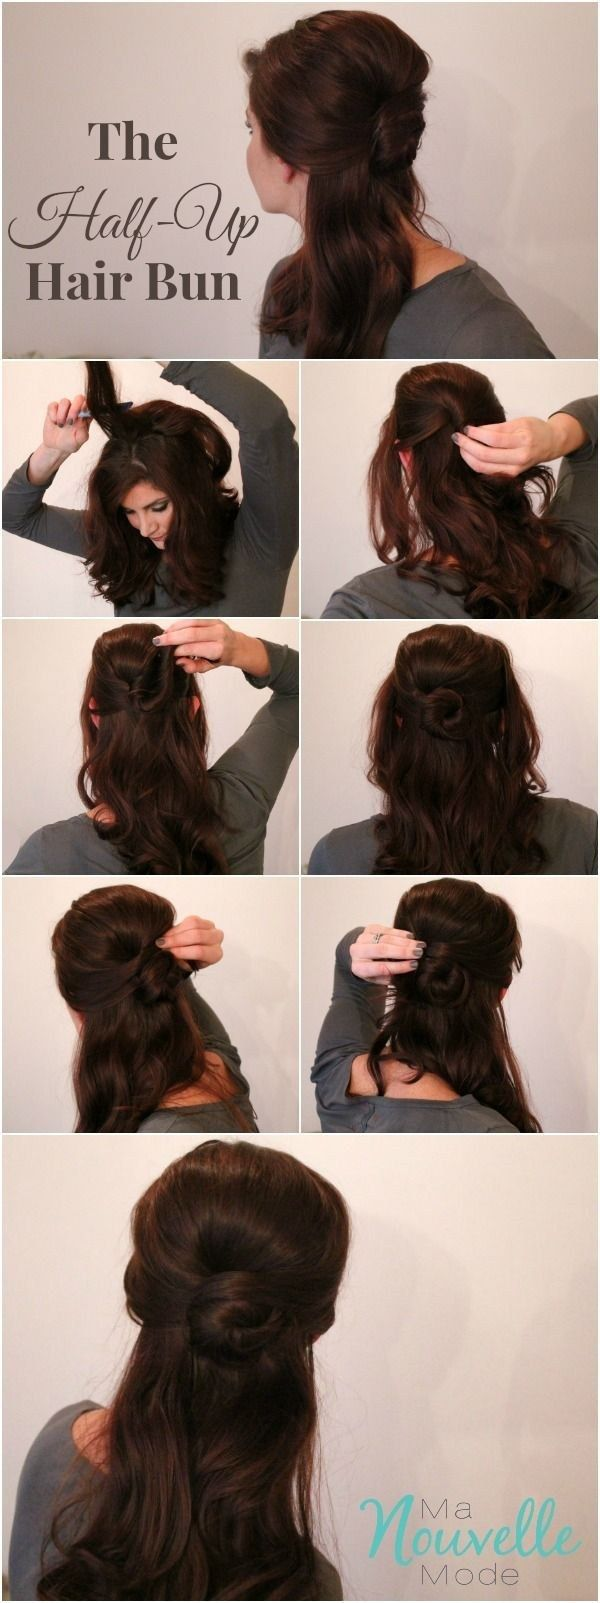 Trendy Braided Hairstyle Tutorial